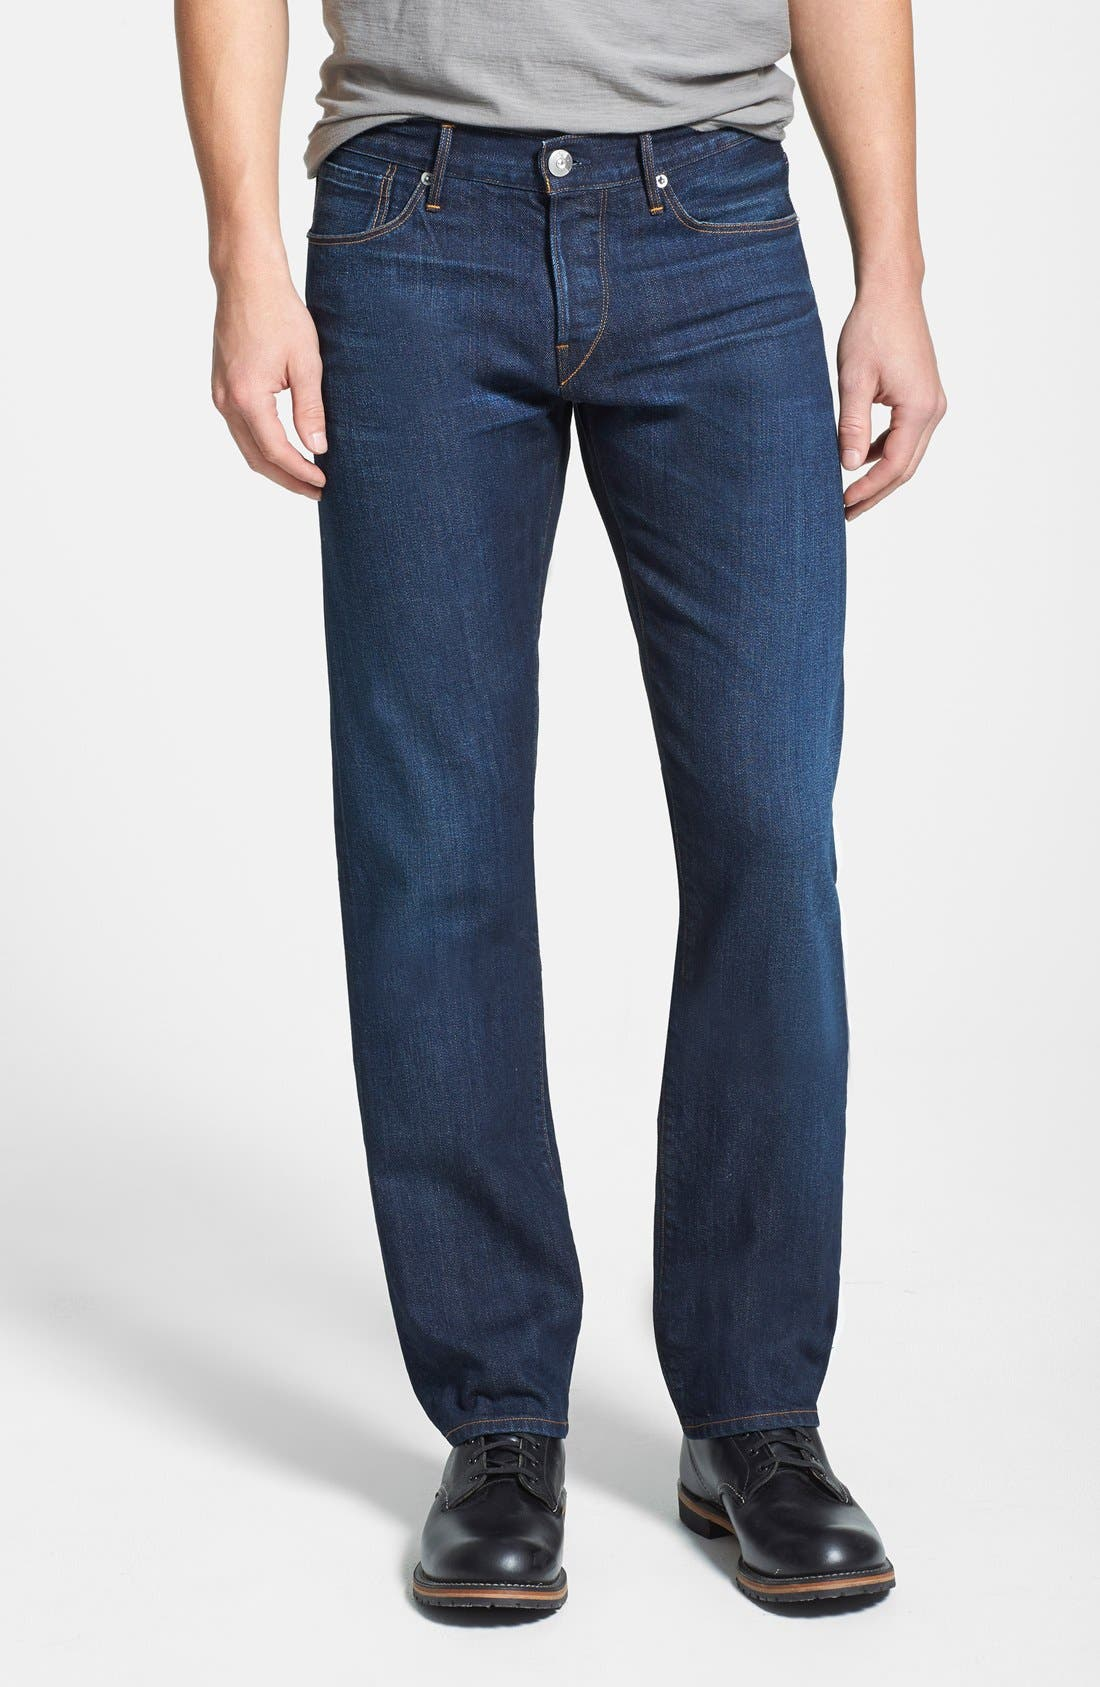 Main Image - 3x1 NYC 'M4' Straight Leg Selvedge Jeans (Makers)